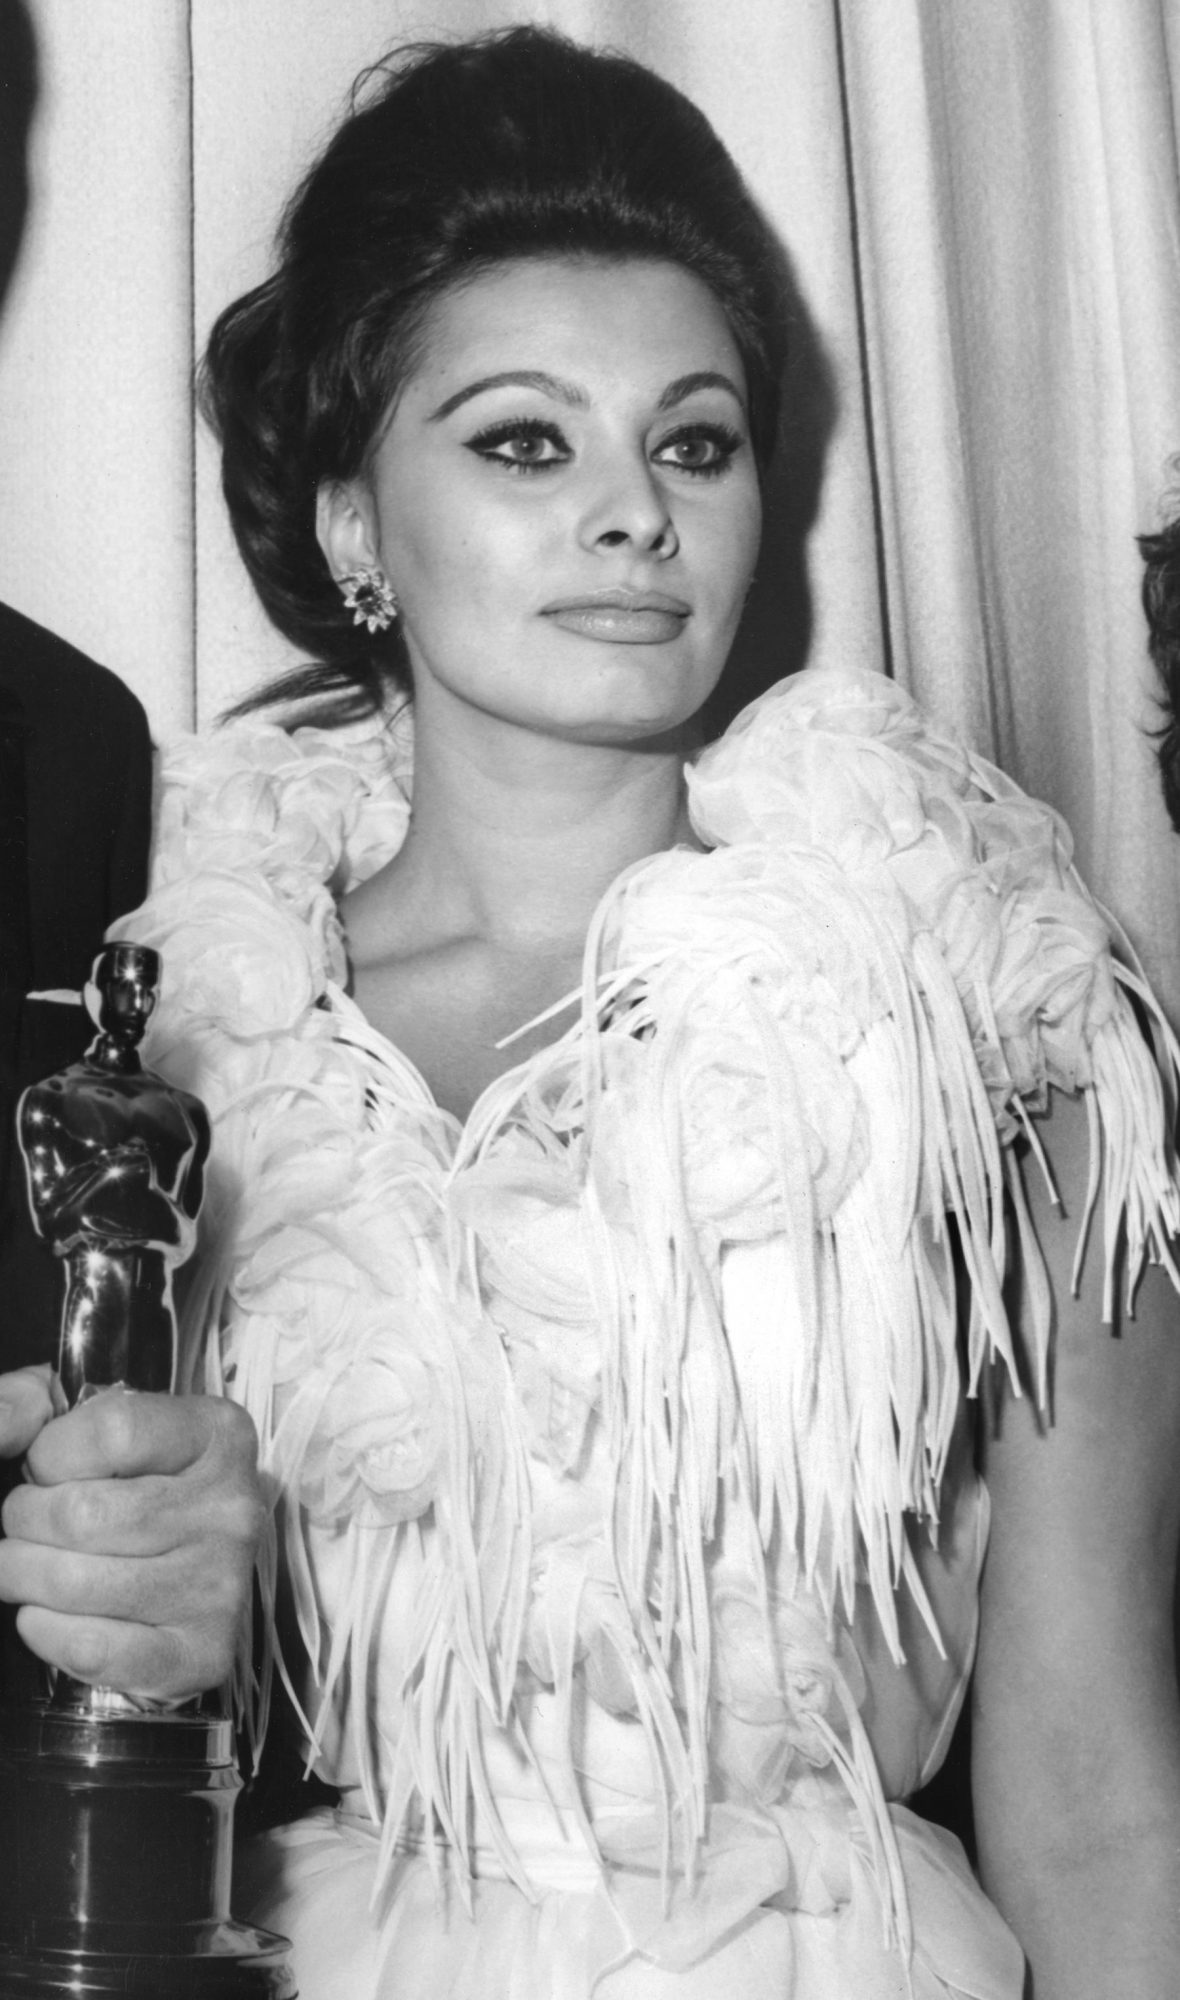 1963: 35th Annual Academy Awards